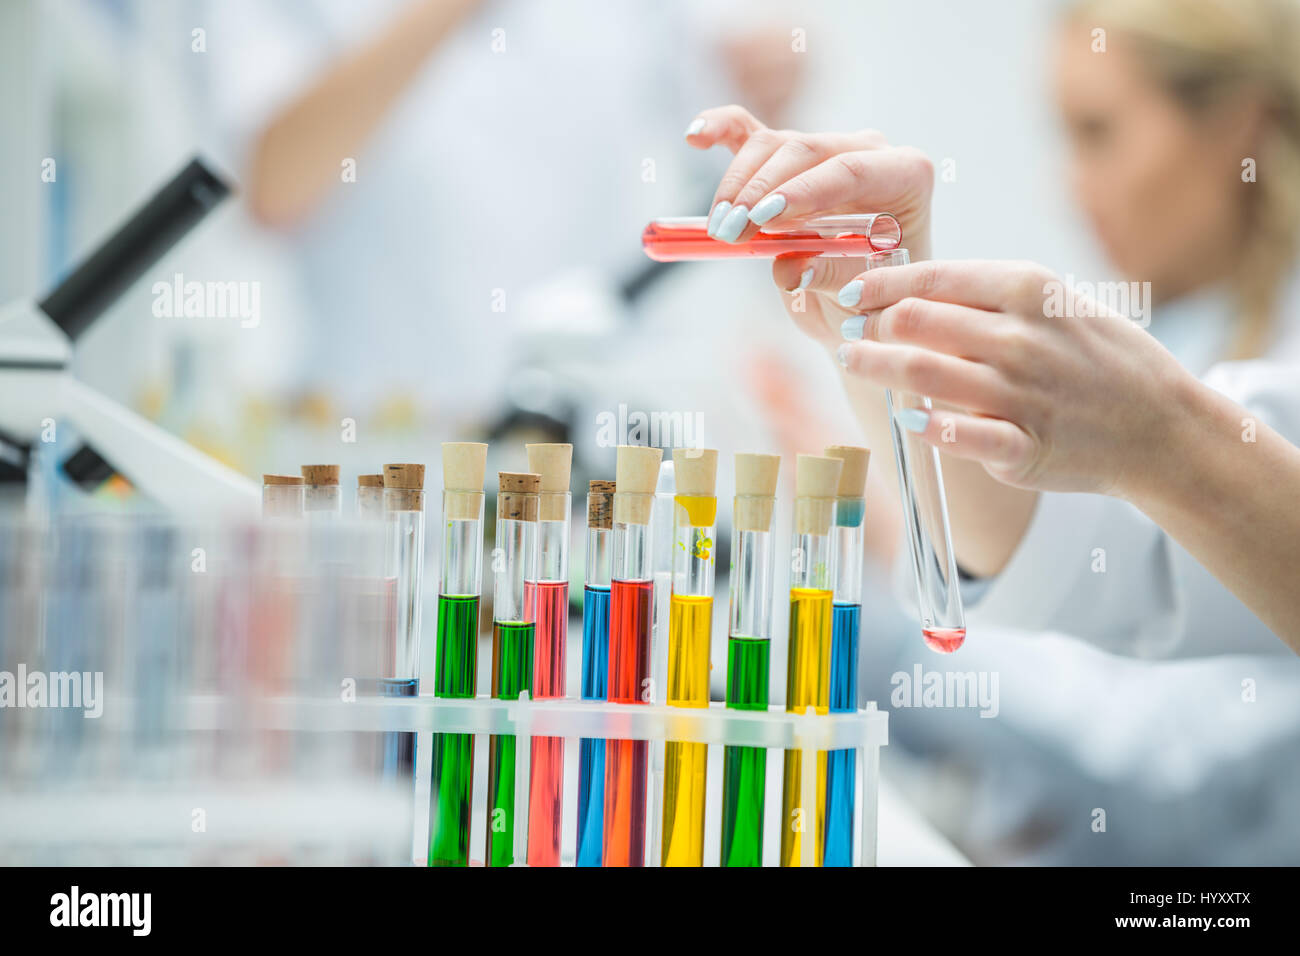 Close-up partial view of female scientist holding test tubes in chemical laboratory Stock Photo